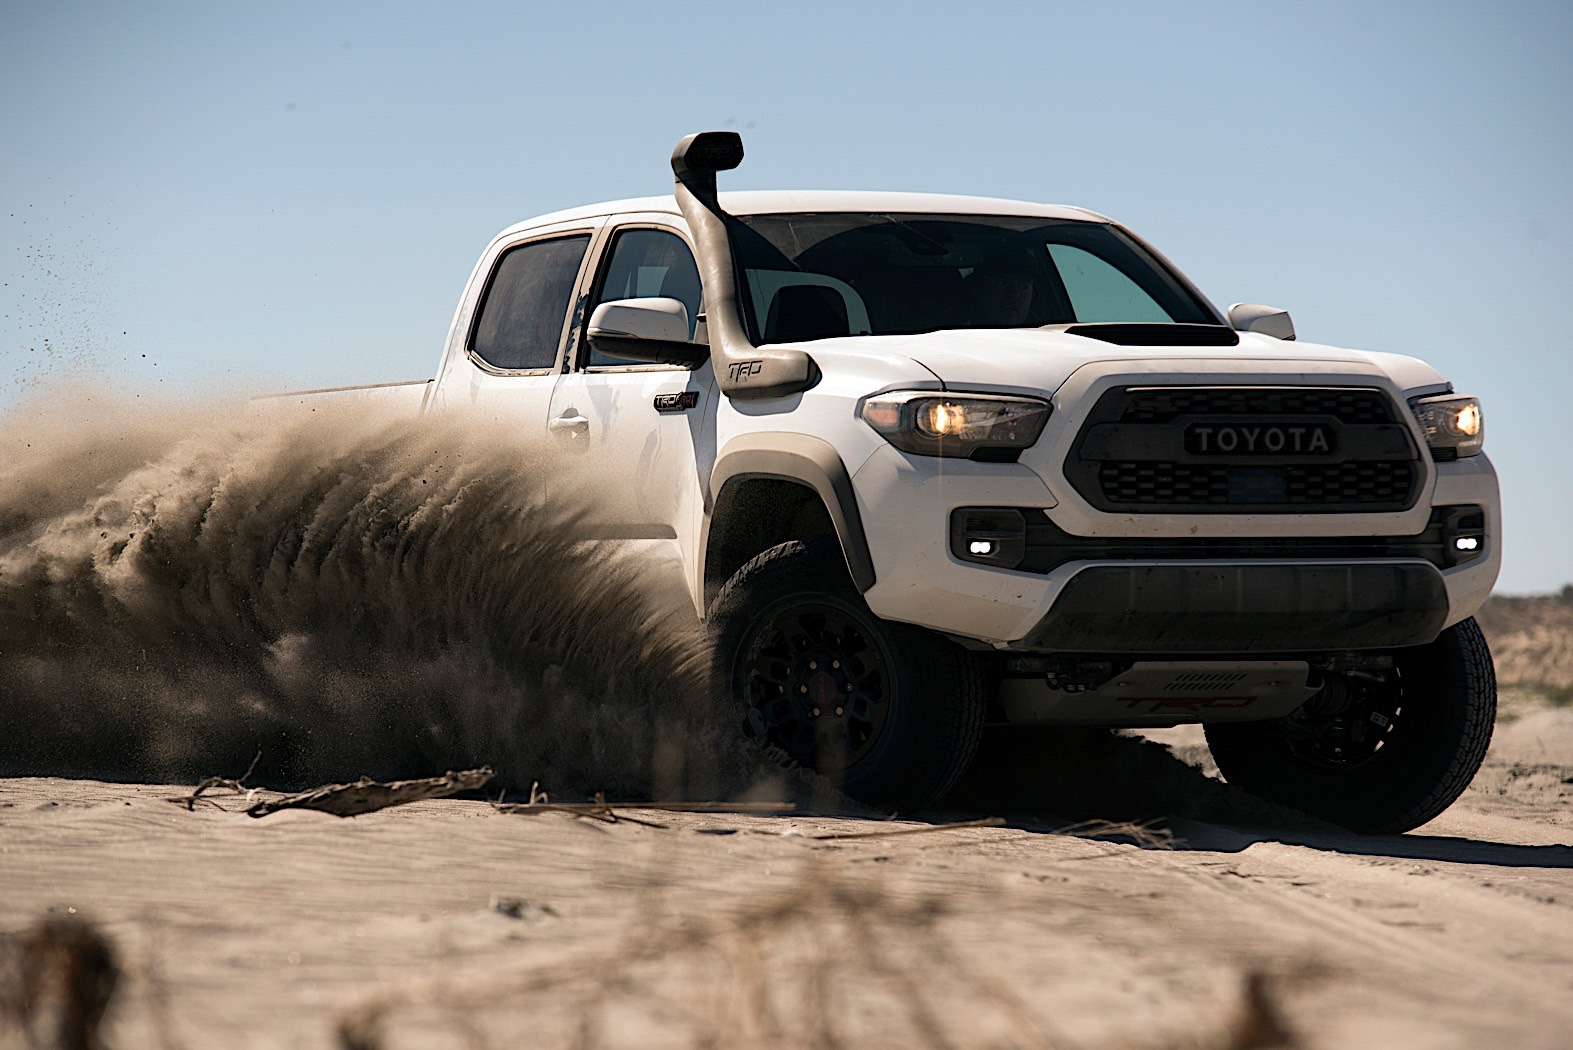 Toyota unveils new off-road trucks at the Chicago Auto Show